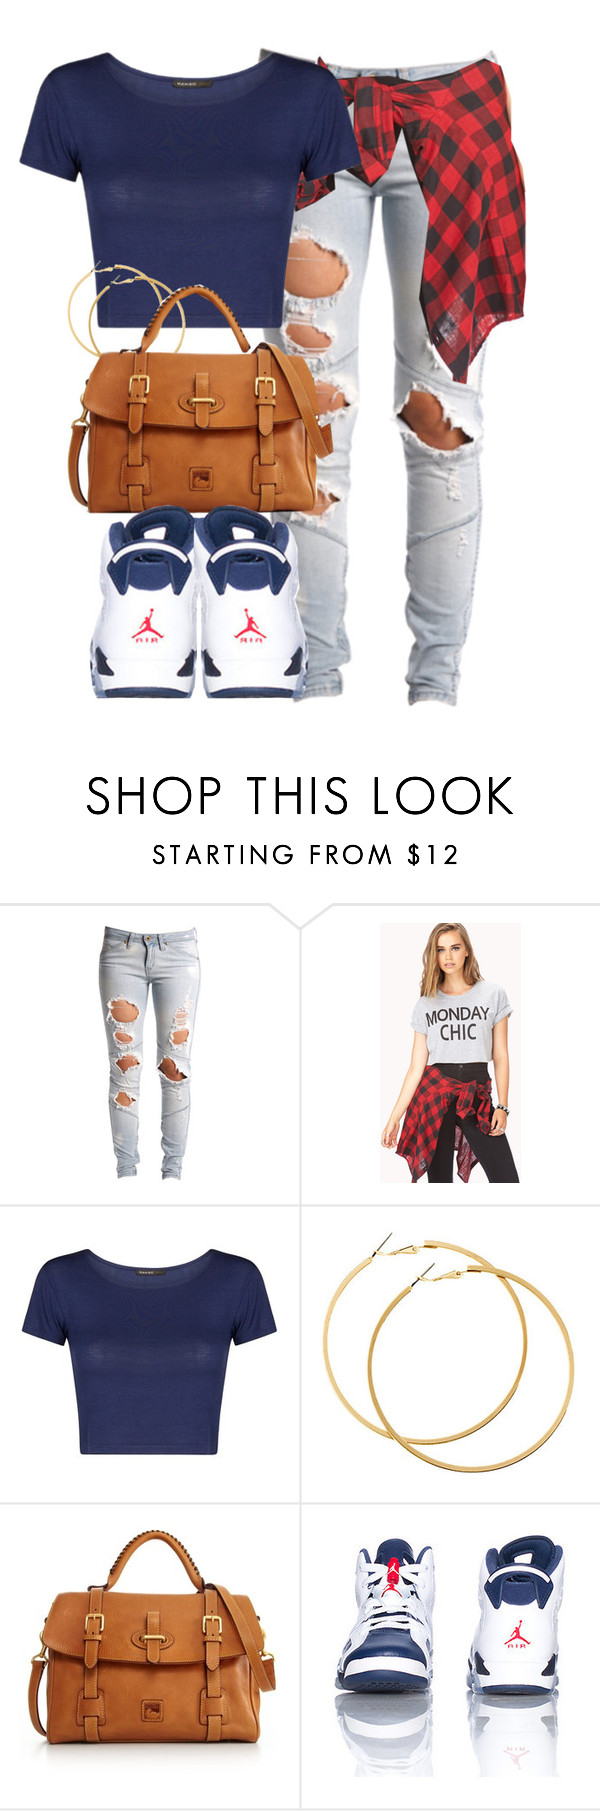 """Dope Darling."" by cheerstostyle ❤ liked on Polyvore featuring Lee, Forever 21, MANGO, H&M, Dooney & Bourke, women's clothing, women's fashion, women, female and woman"